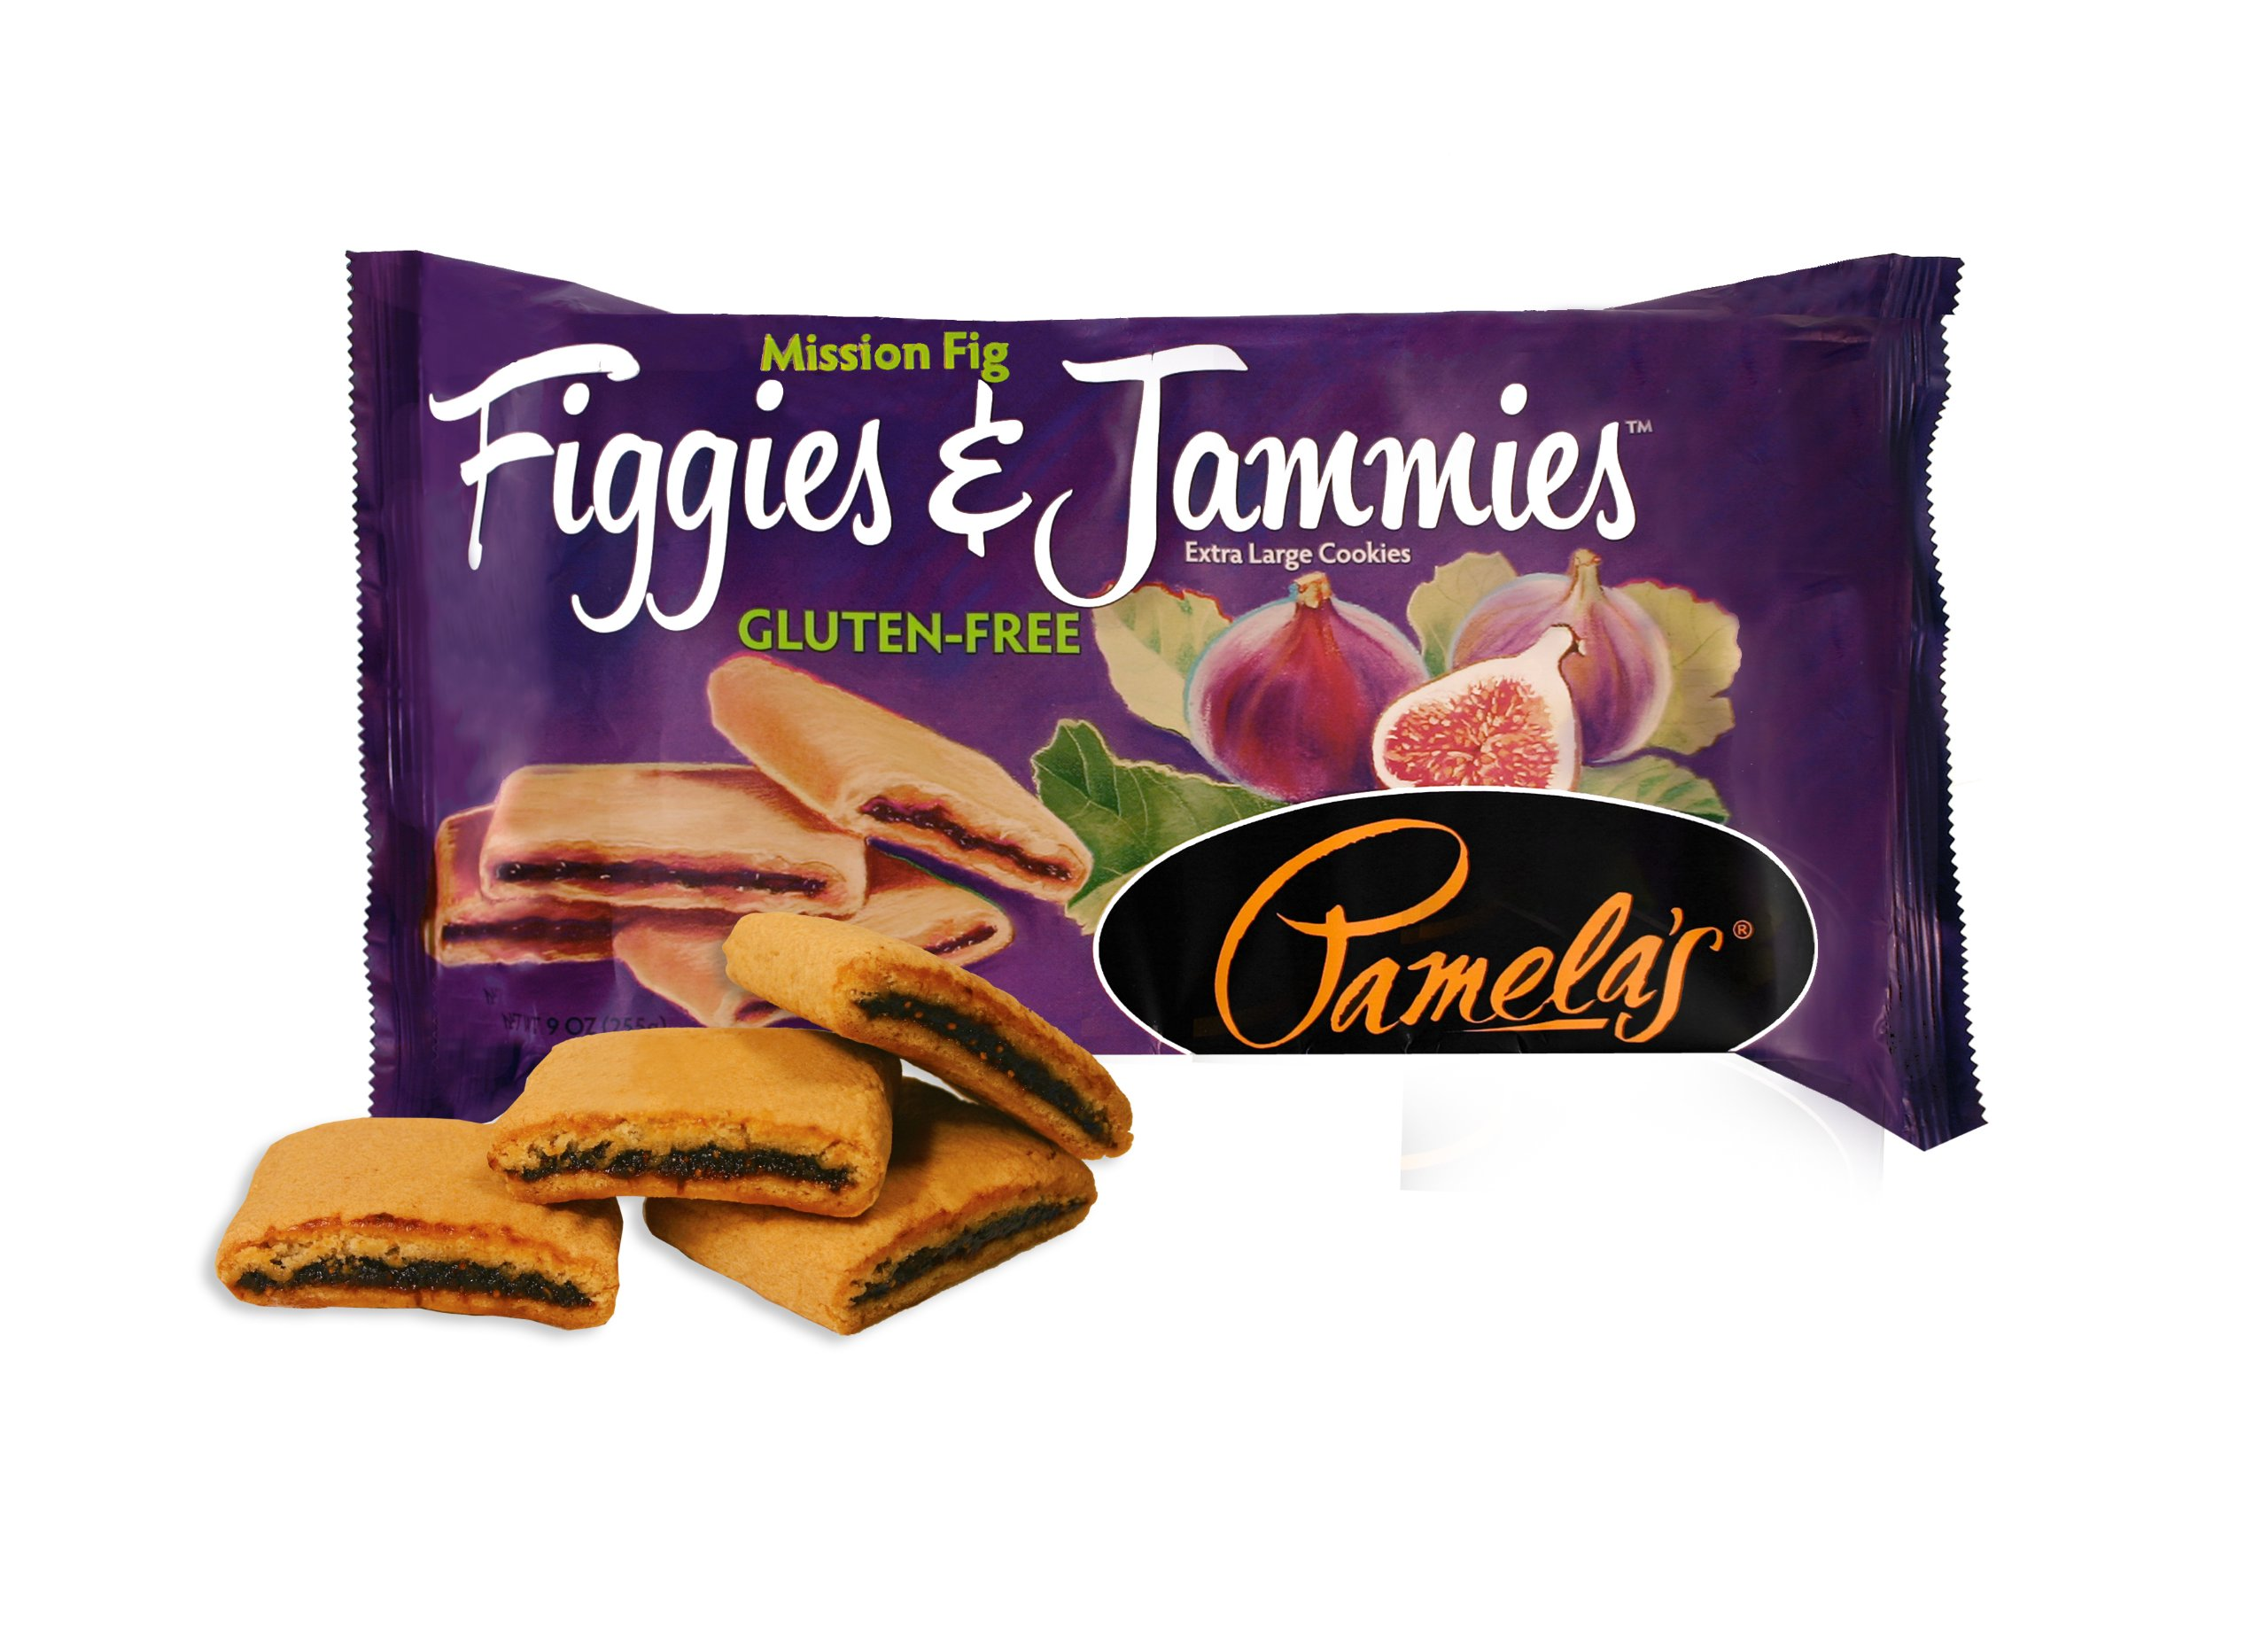 Pamela's Products Gluten Free Figgies & Jammies Cookies, Mission Fig, 9 Ounce (Pack of 6)